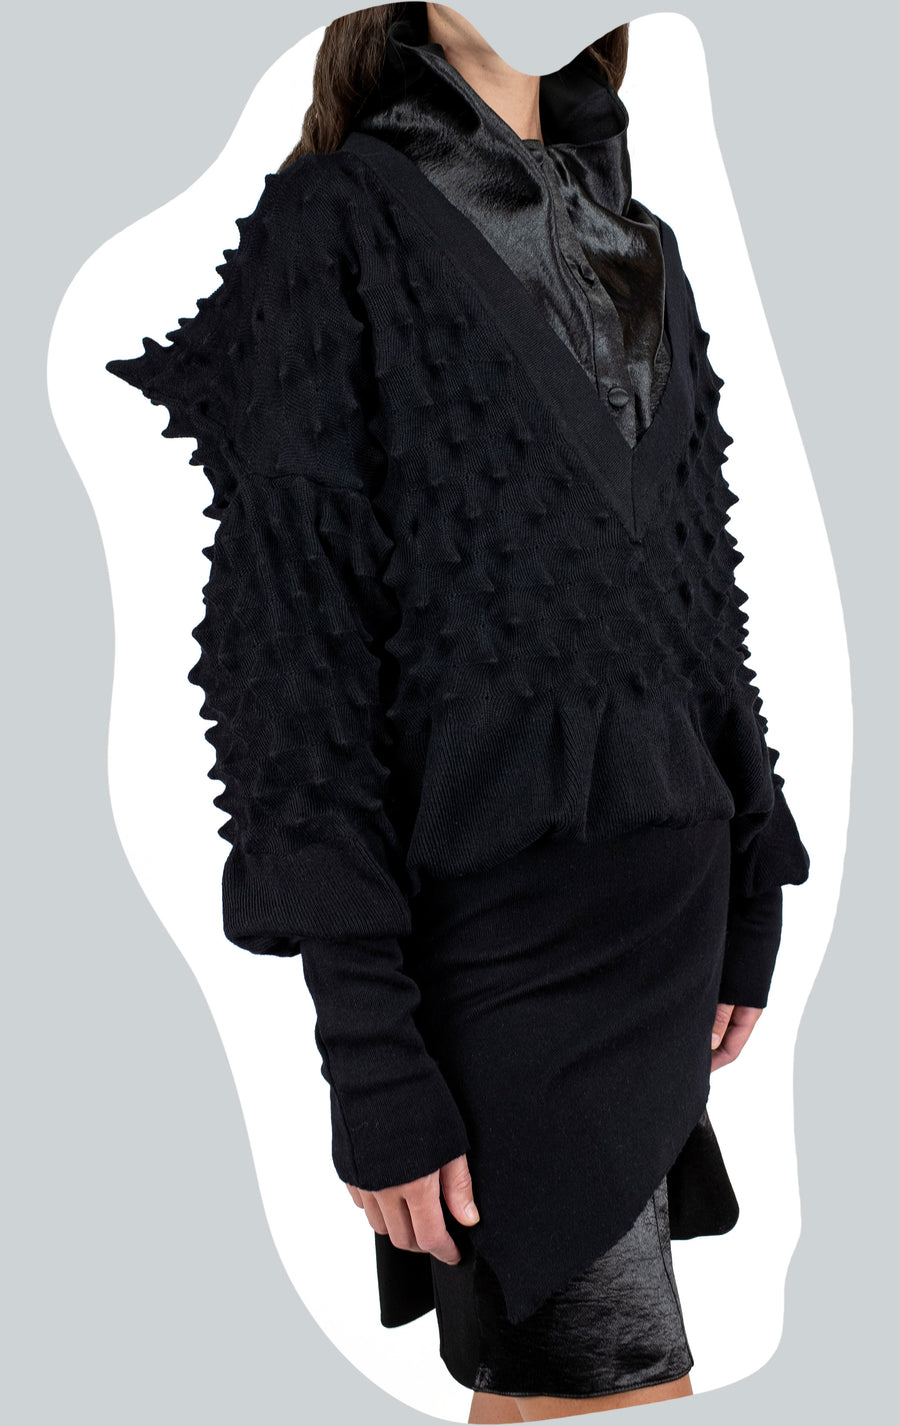 DIMENSIONAL STRIPED KNIT V NECK ONYX AW20